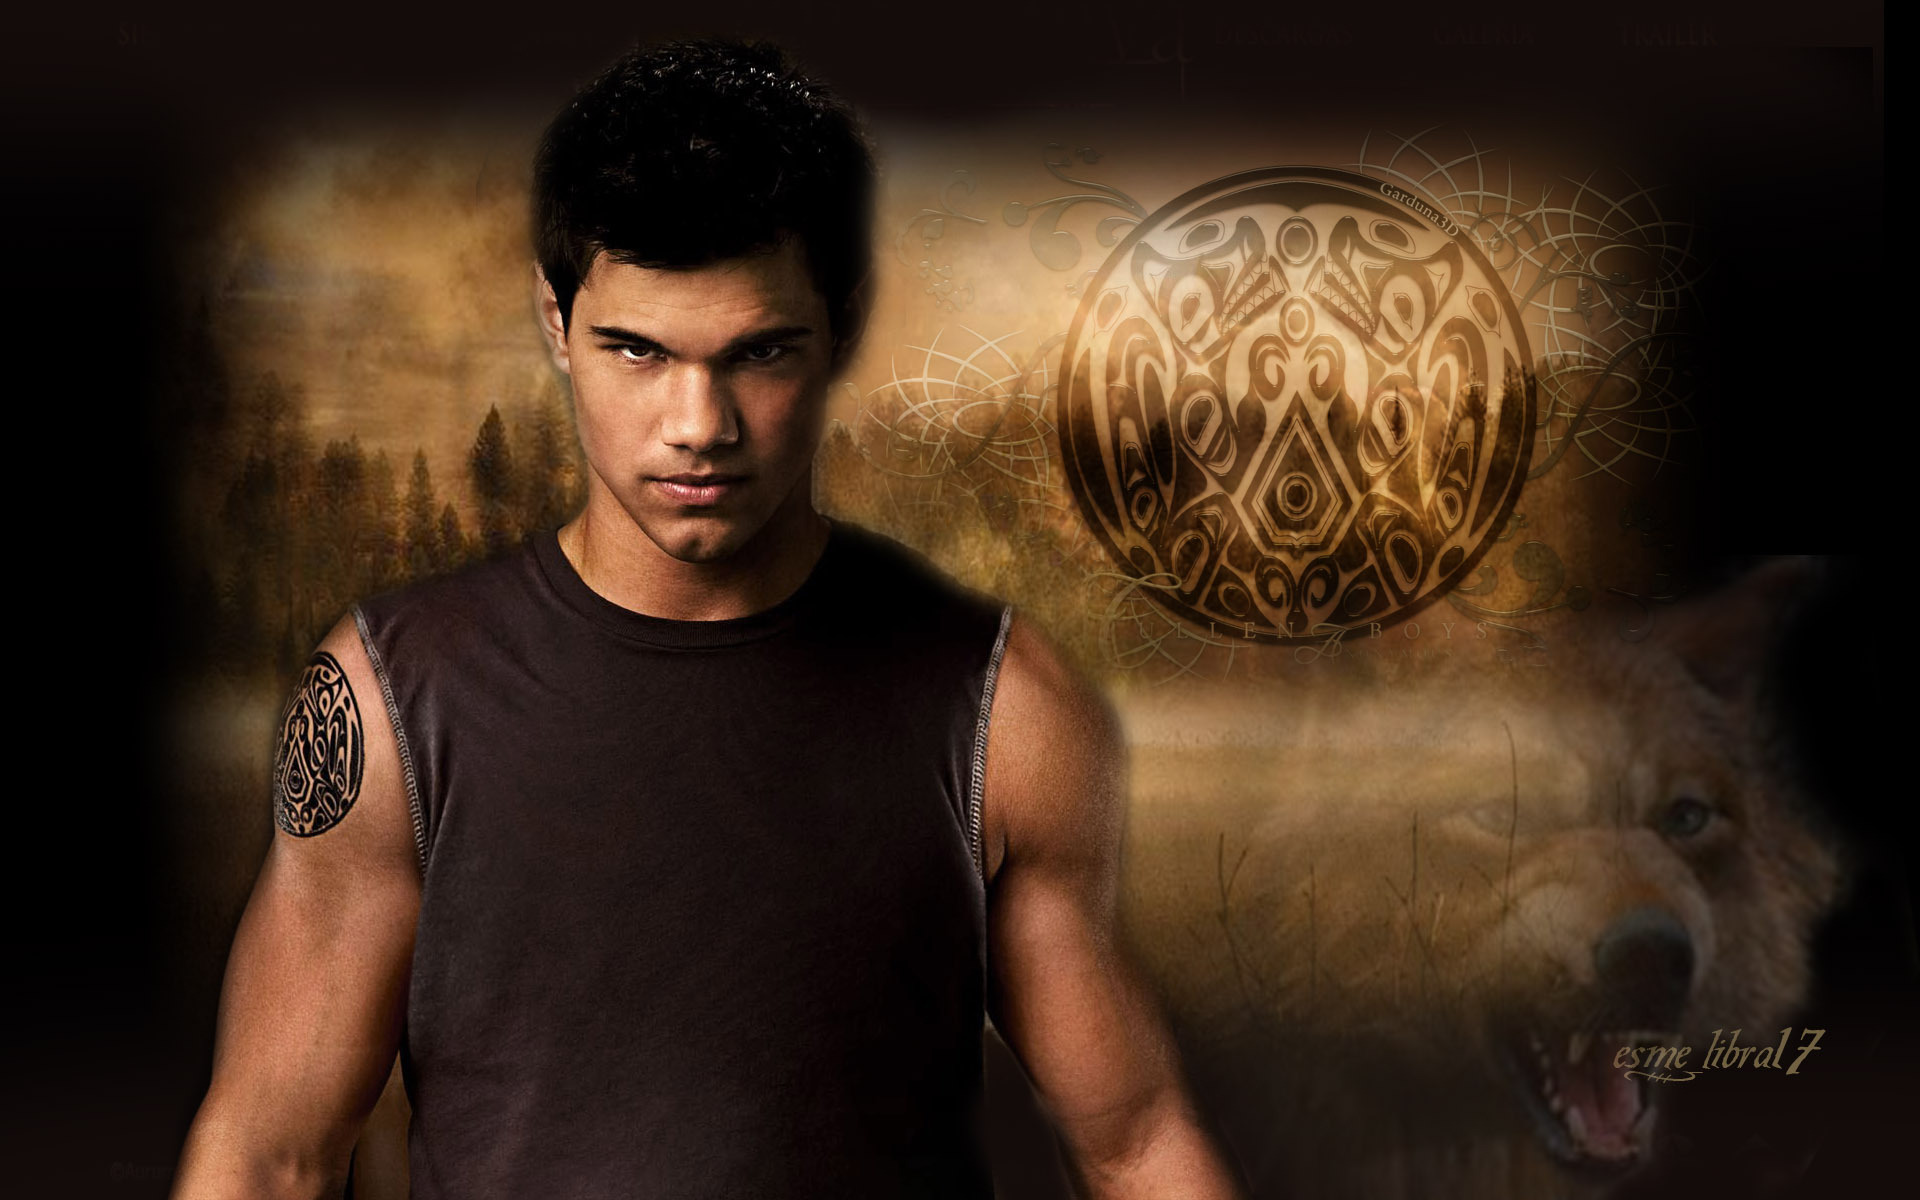 jacob black - twilight Crepúsculo Wallpaper (8395141) - Fanpop